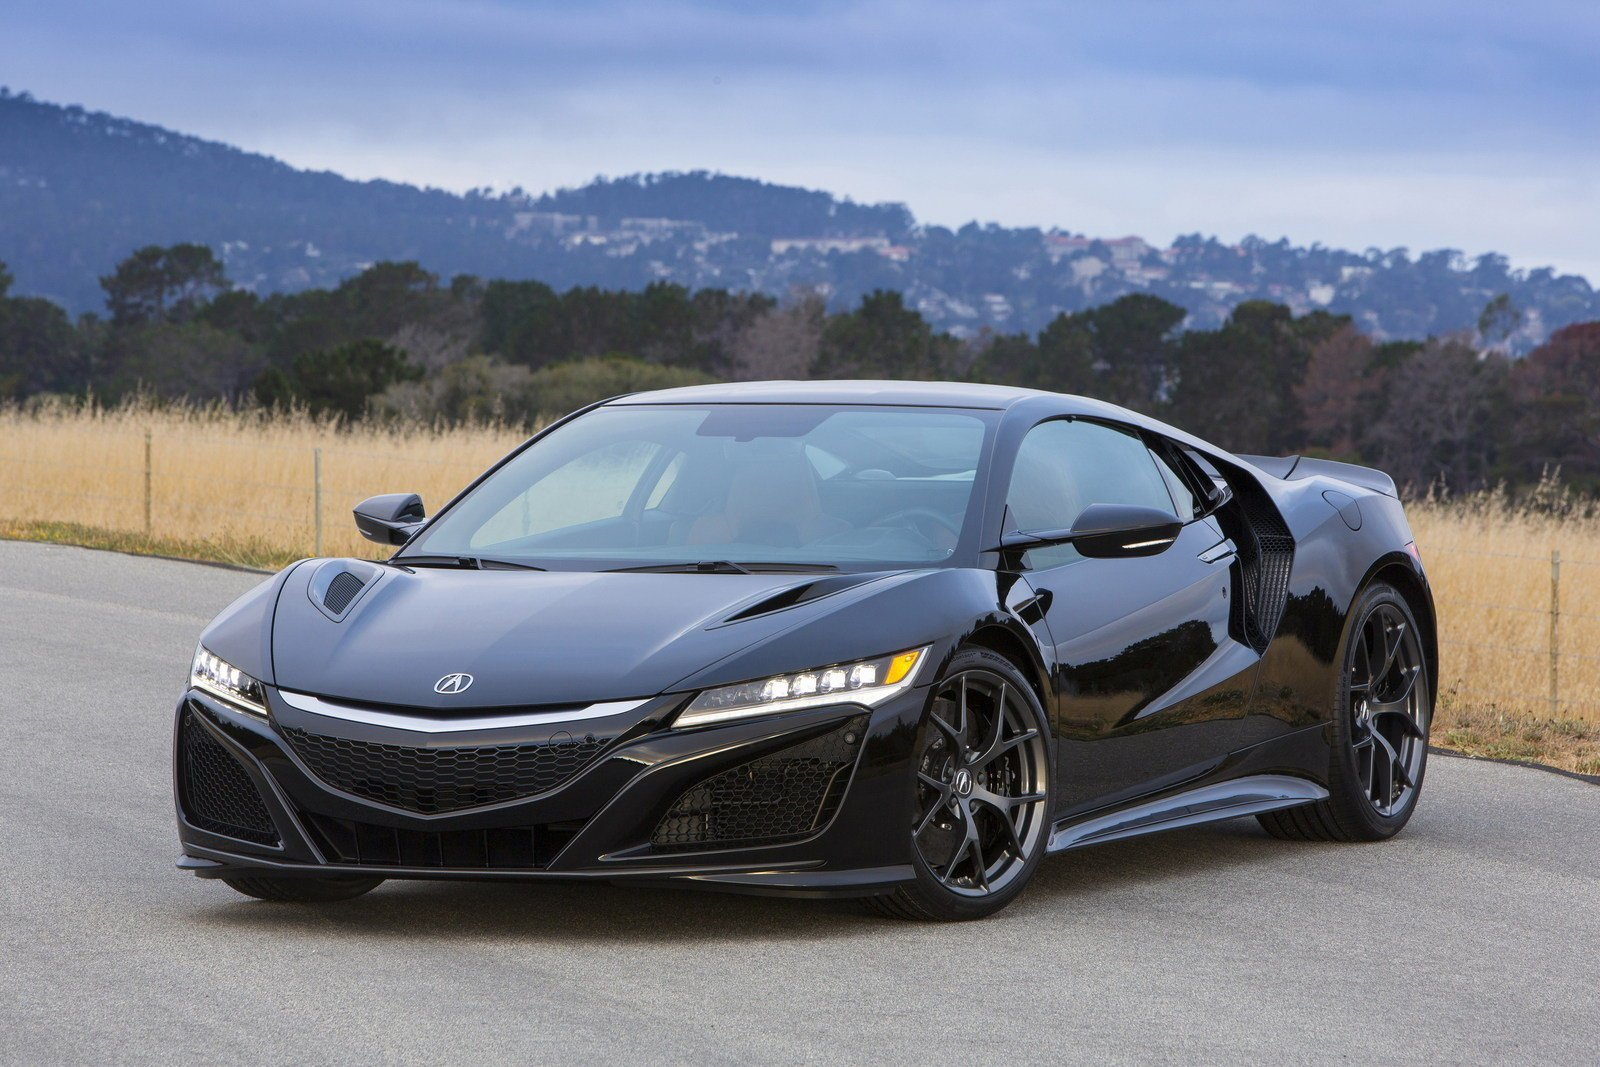 Latest 2016 Acura Nsx Picture 640464 Car Review Top Speed Free Download